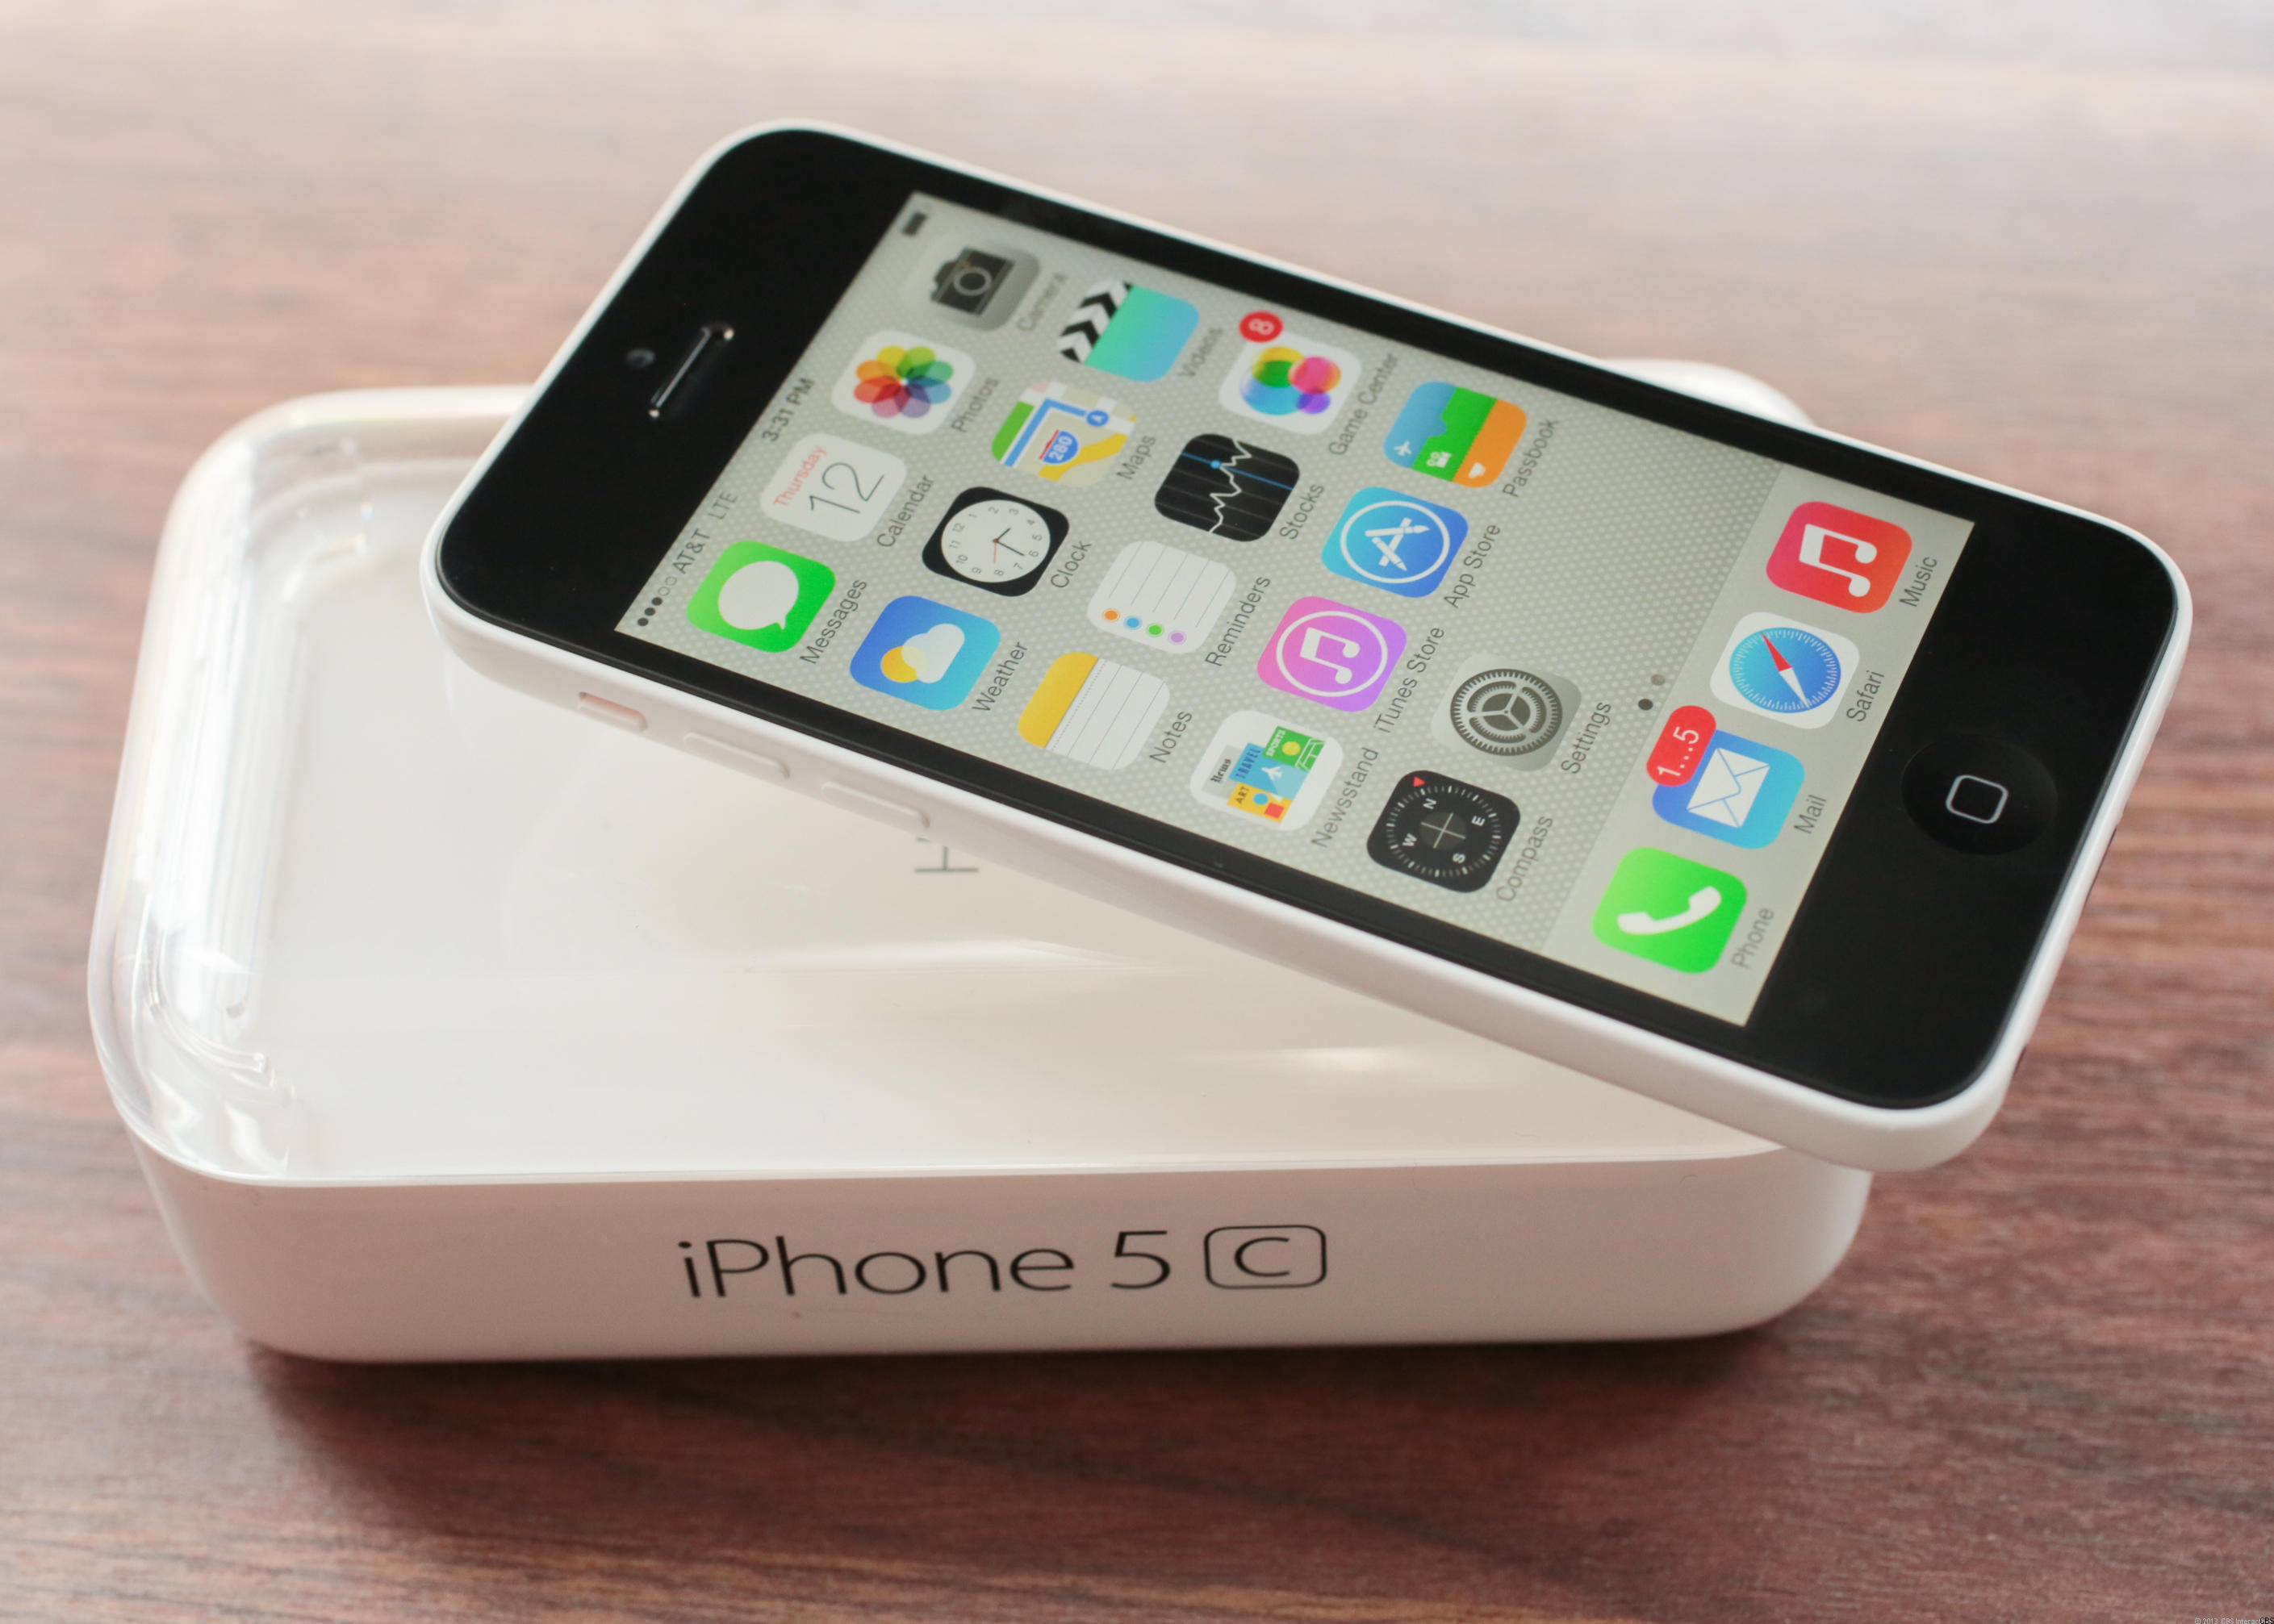 Iphone Se 16go Reconditionné 5 Tips For Using New Iphone 5c Iphone 5s Or Apple Ios 7 Cbs News